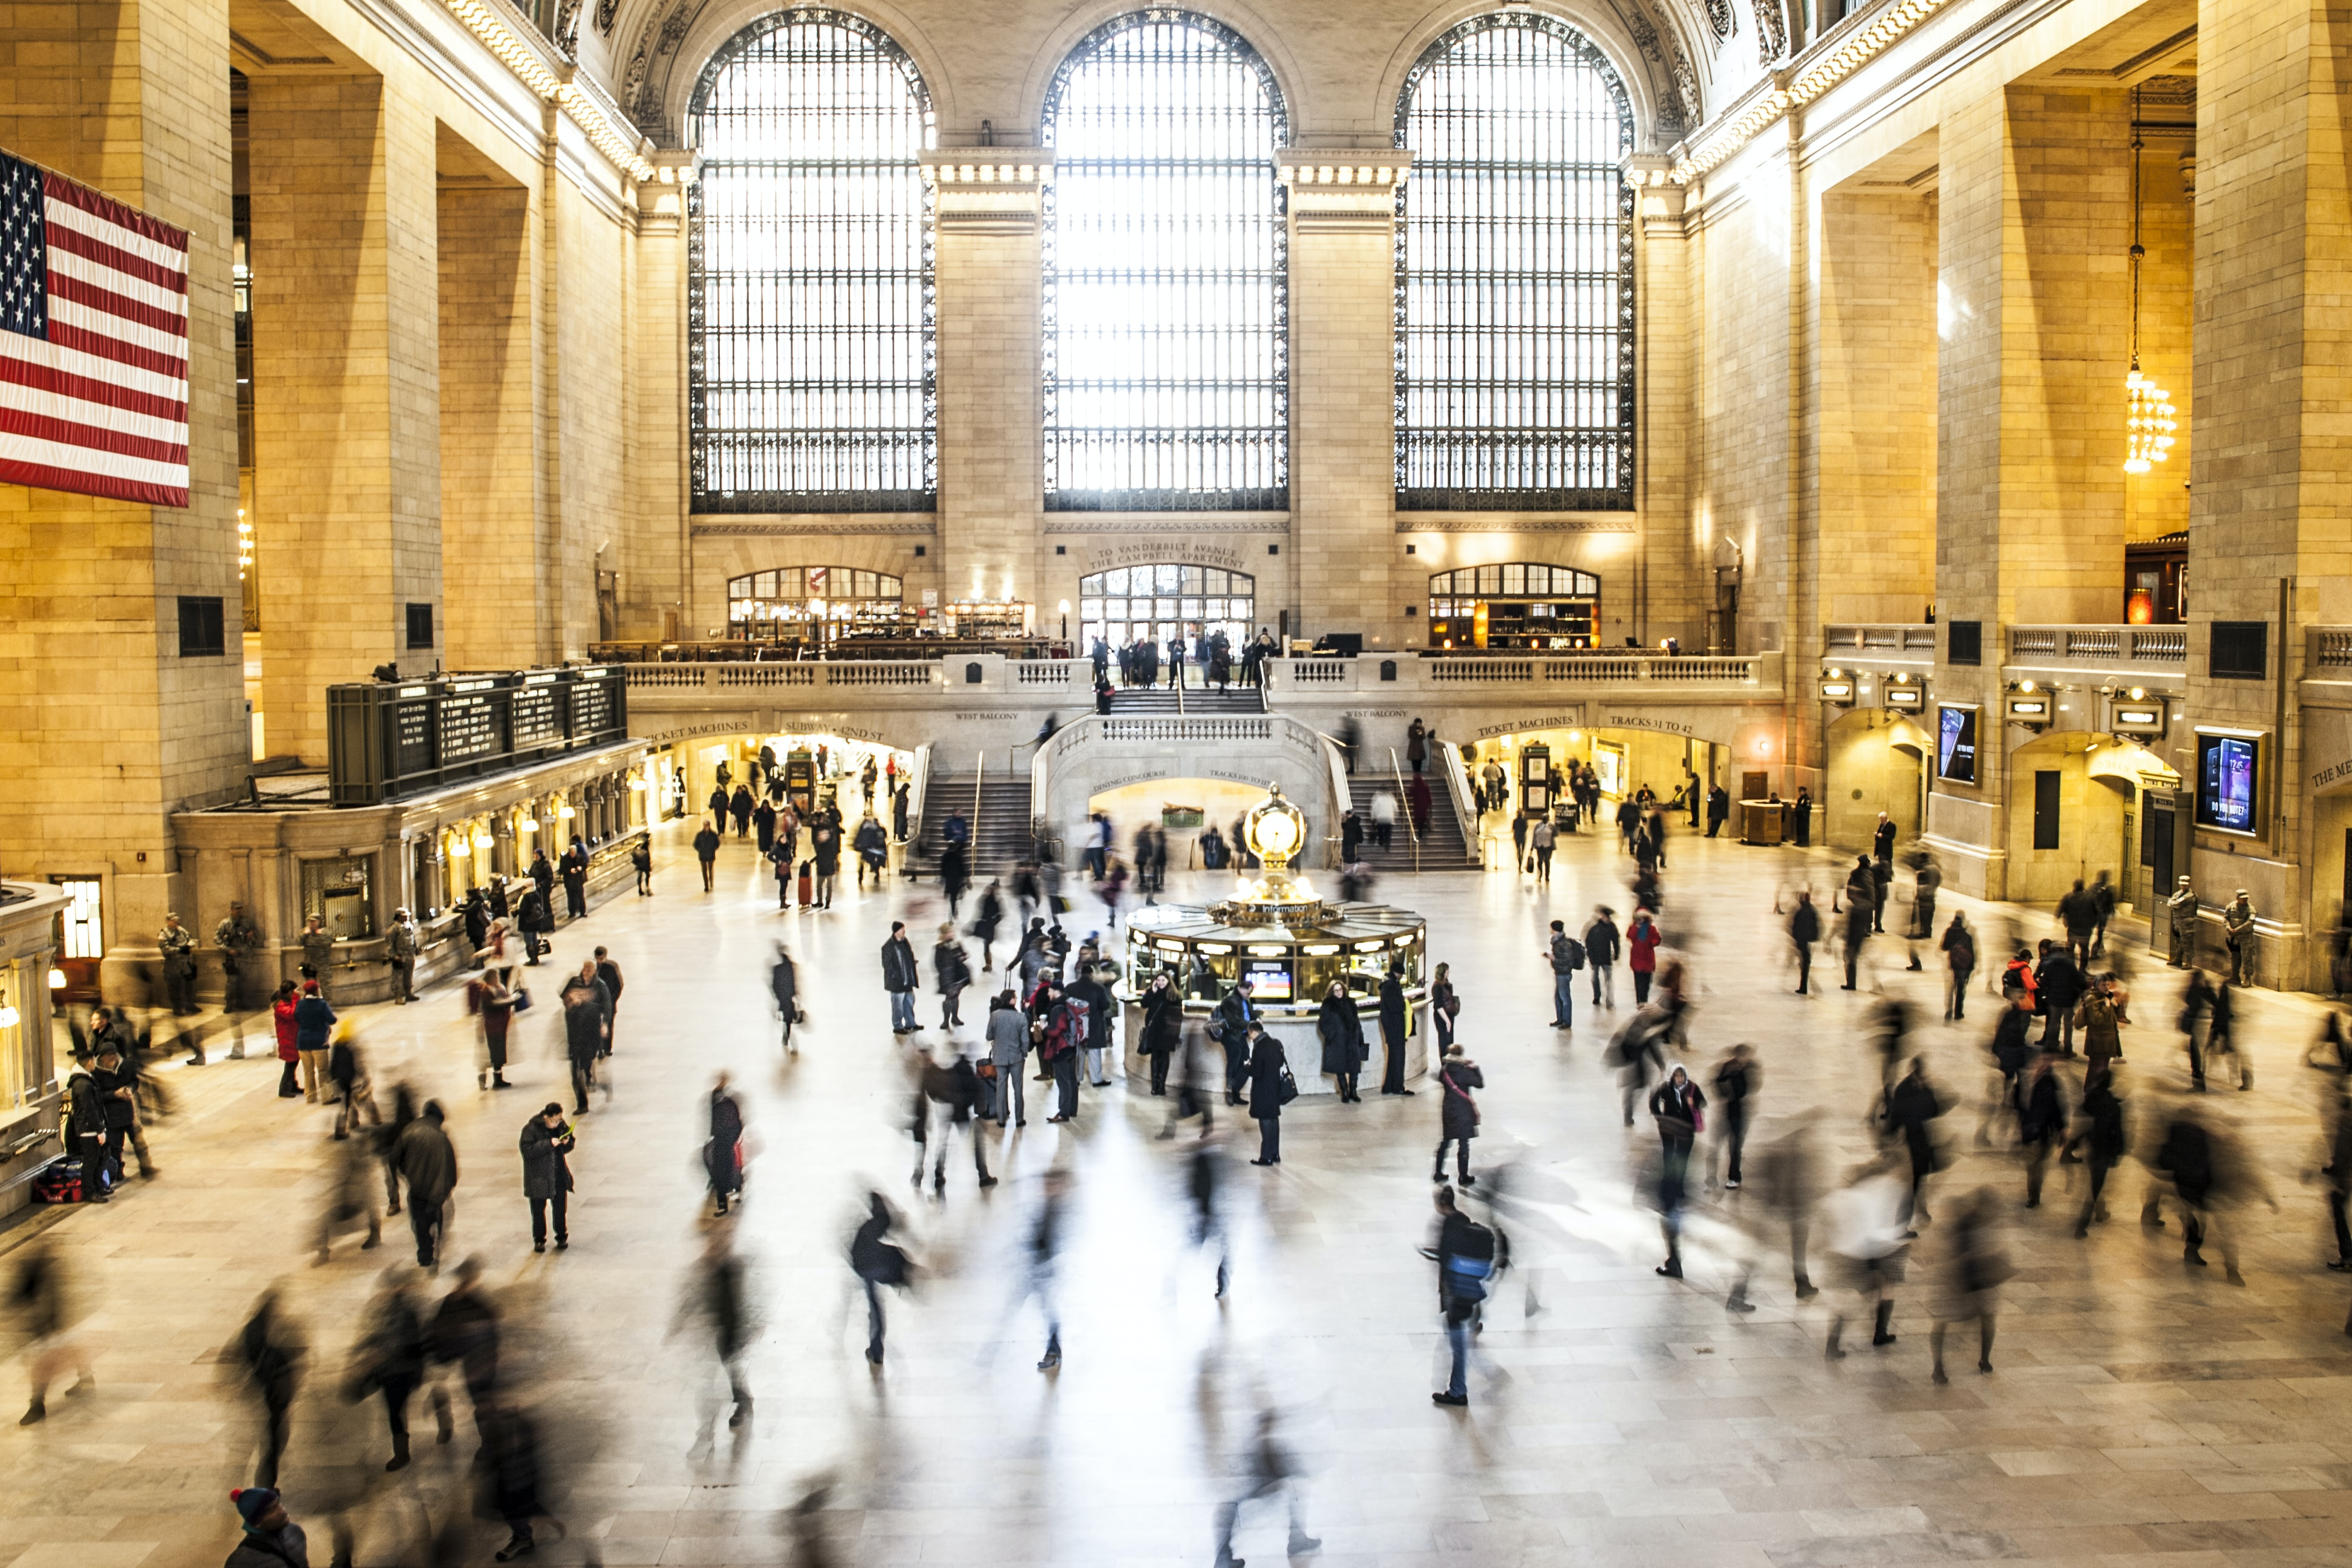 Foot traffic moving quickly around Grand Central train station in New York City